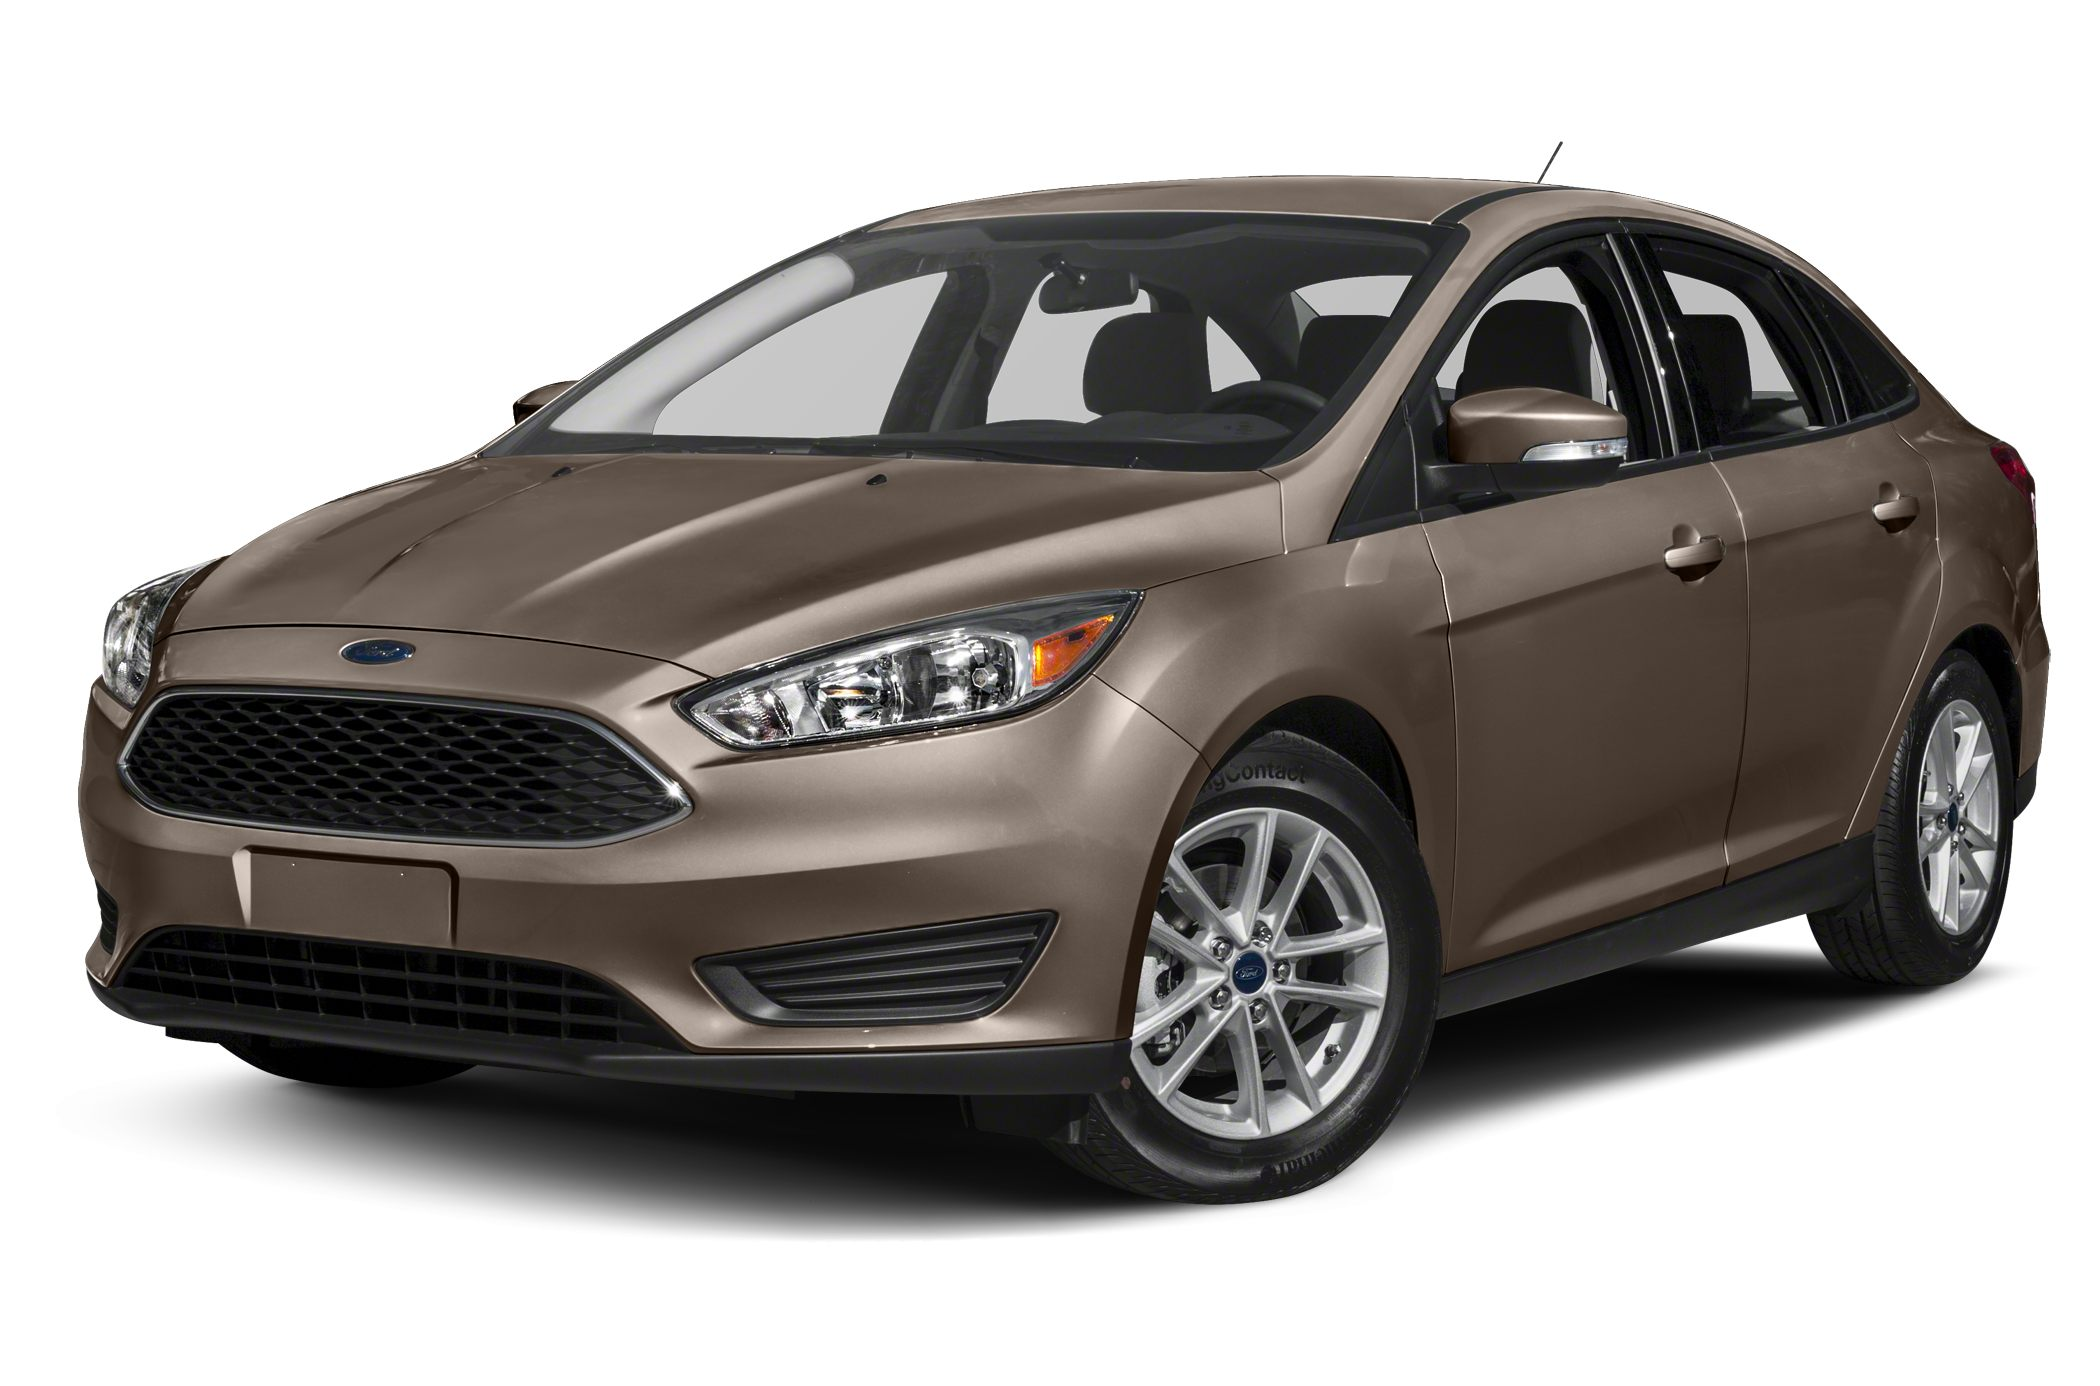 2015 Ford Focus SE Sedan for sale in Selinsgrove for $17,970 with 1 miles.